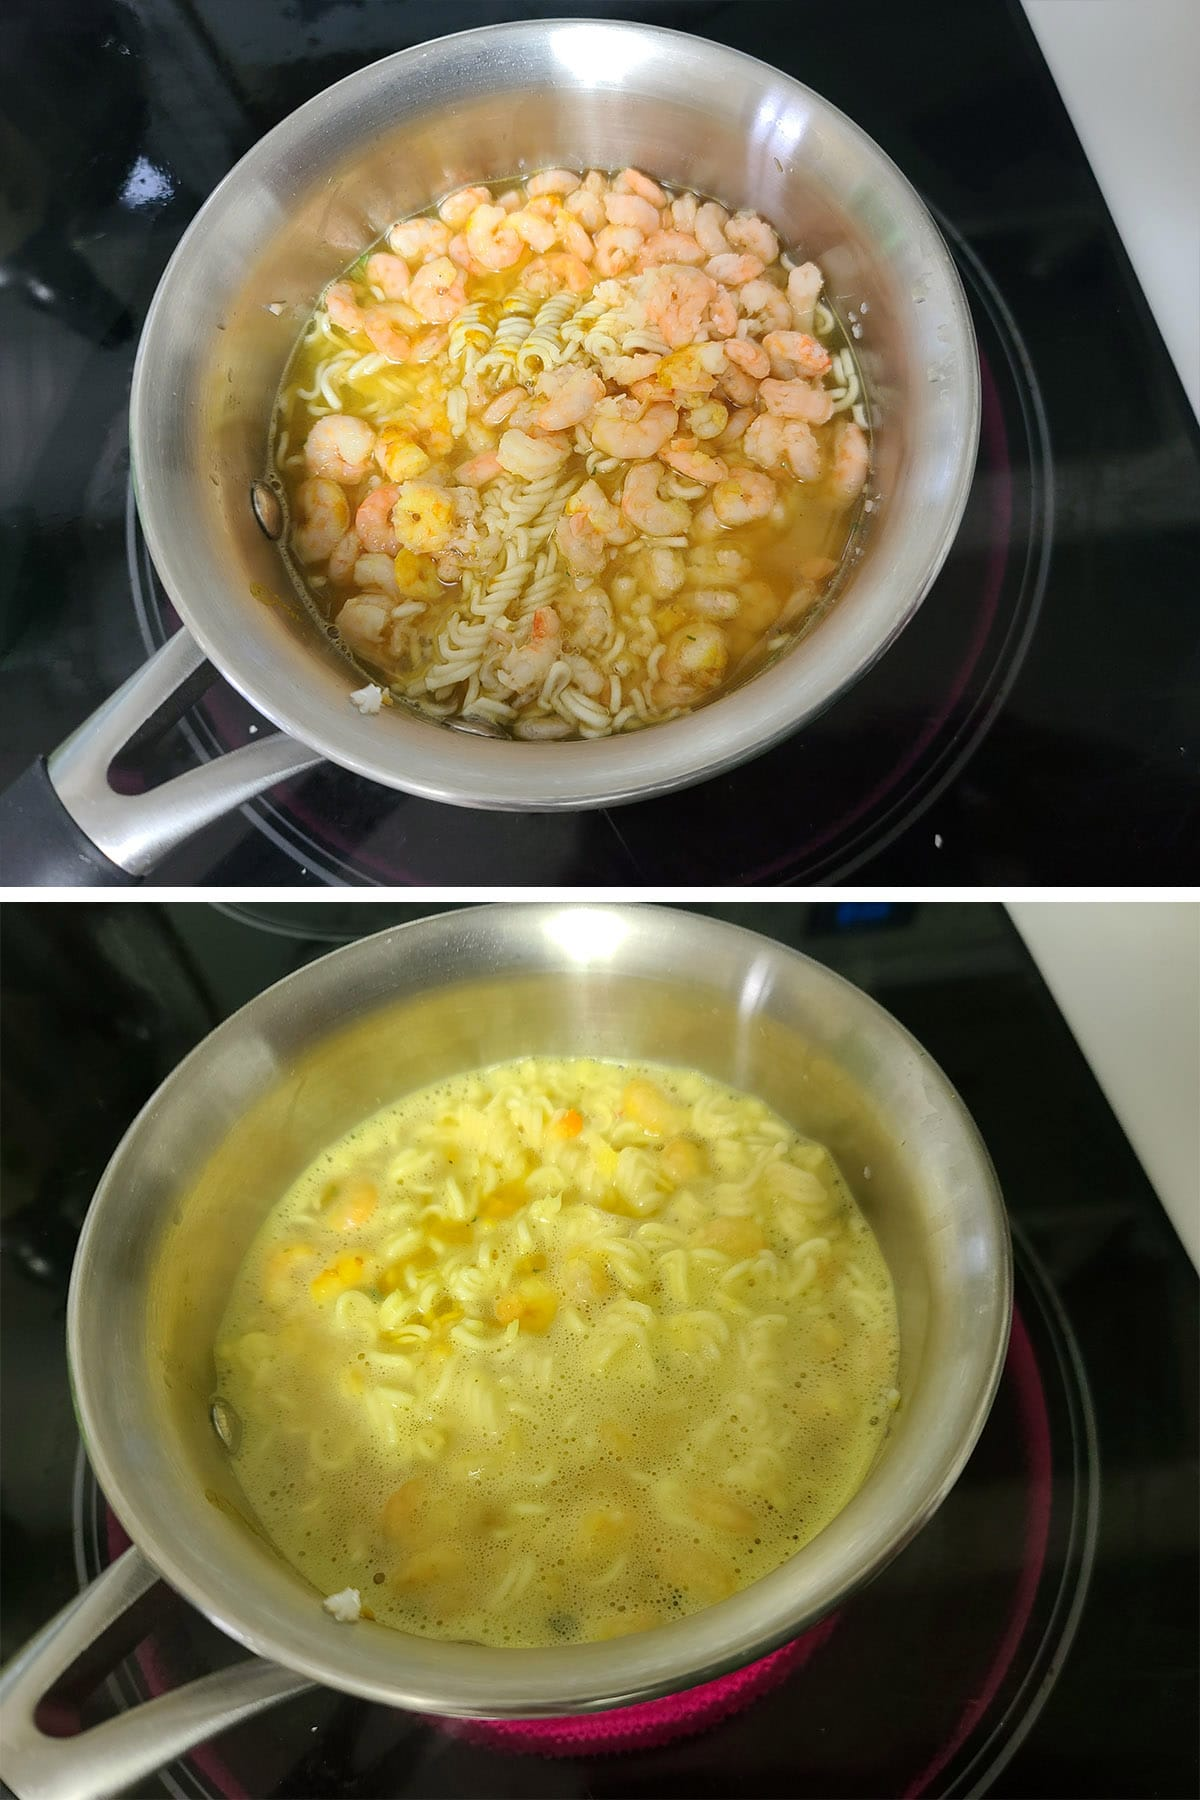 A small amount of water is added to the pot, and simmered.